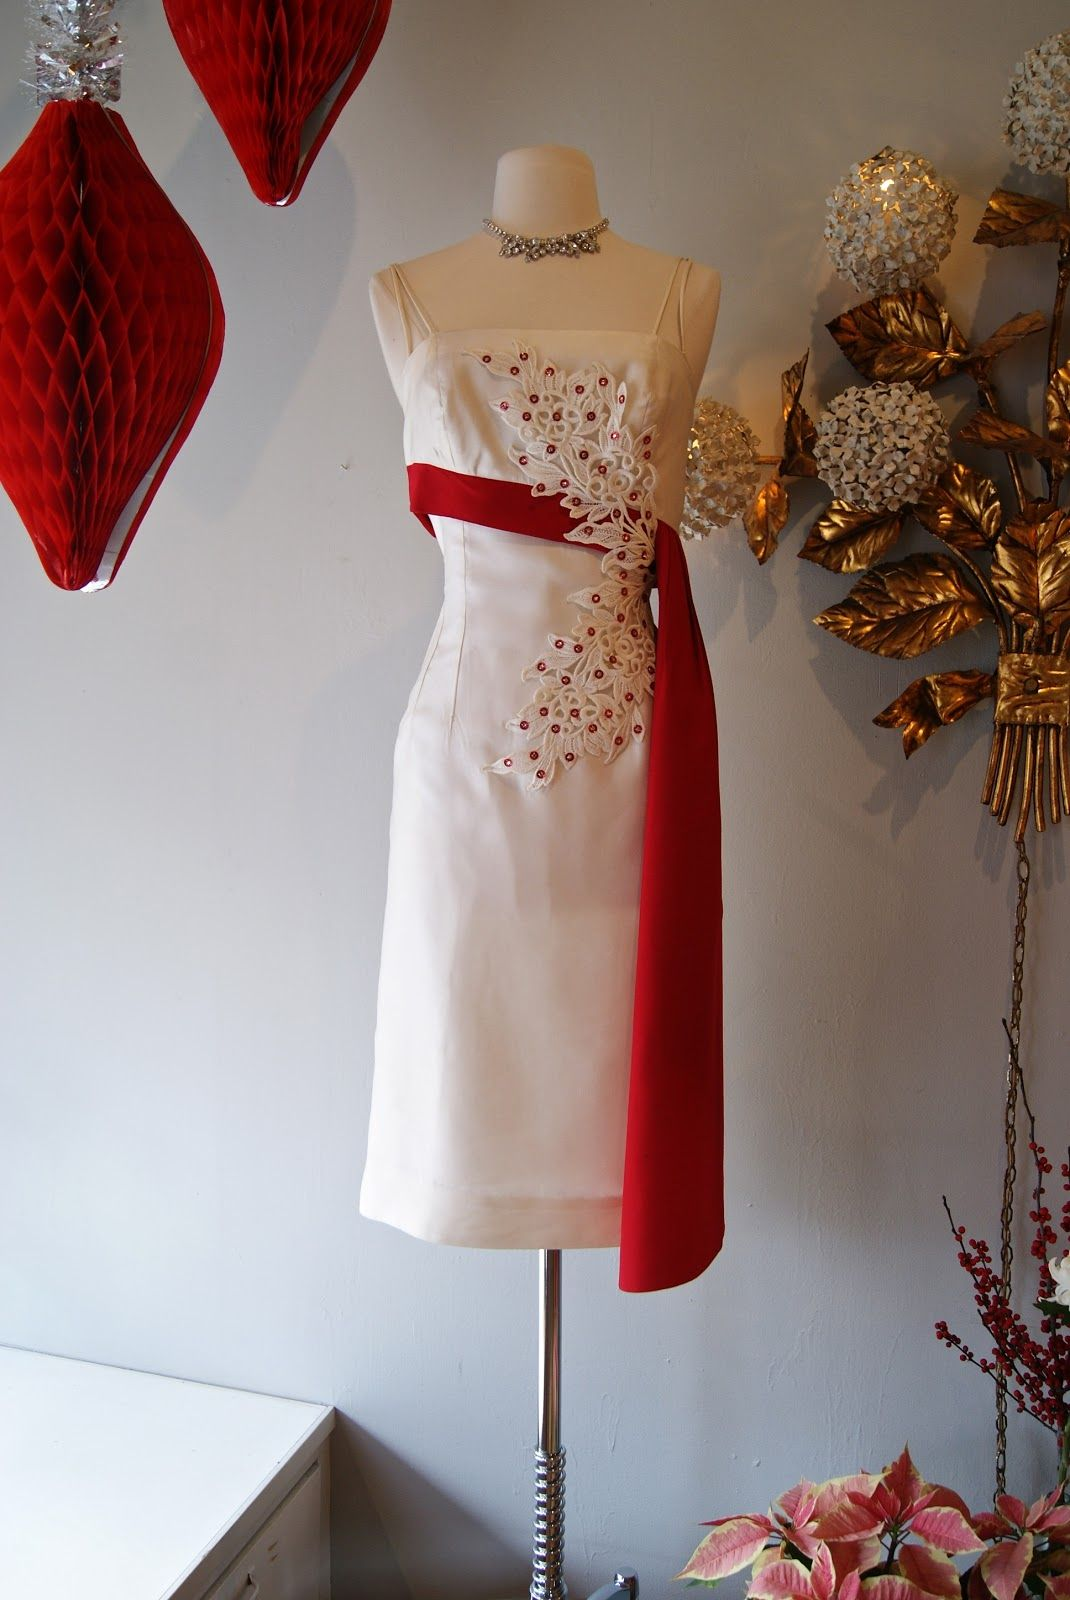 Best dresses to wear to a beach wedding  Xtabay Vintage Clothing Boutique  Portland Oregon My Top Ten